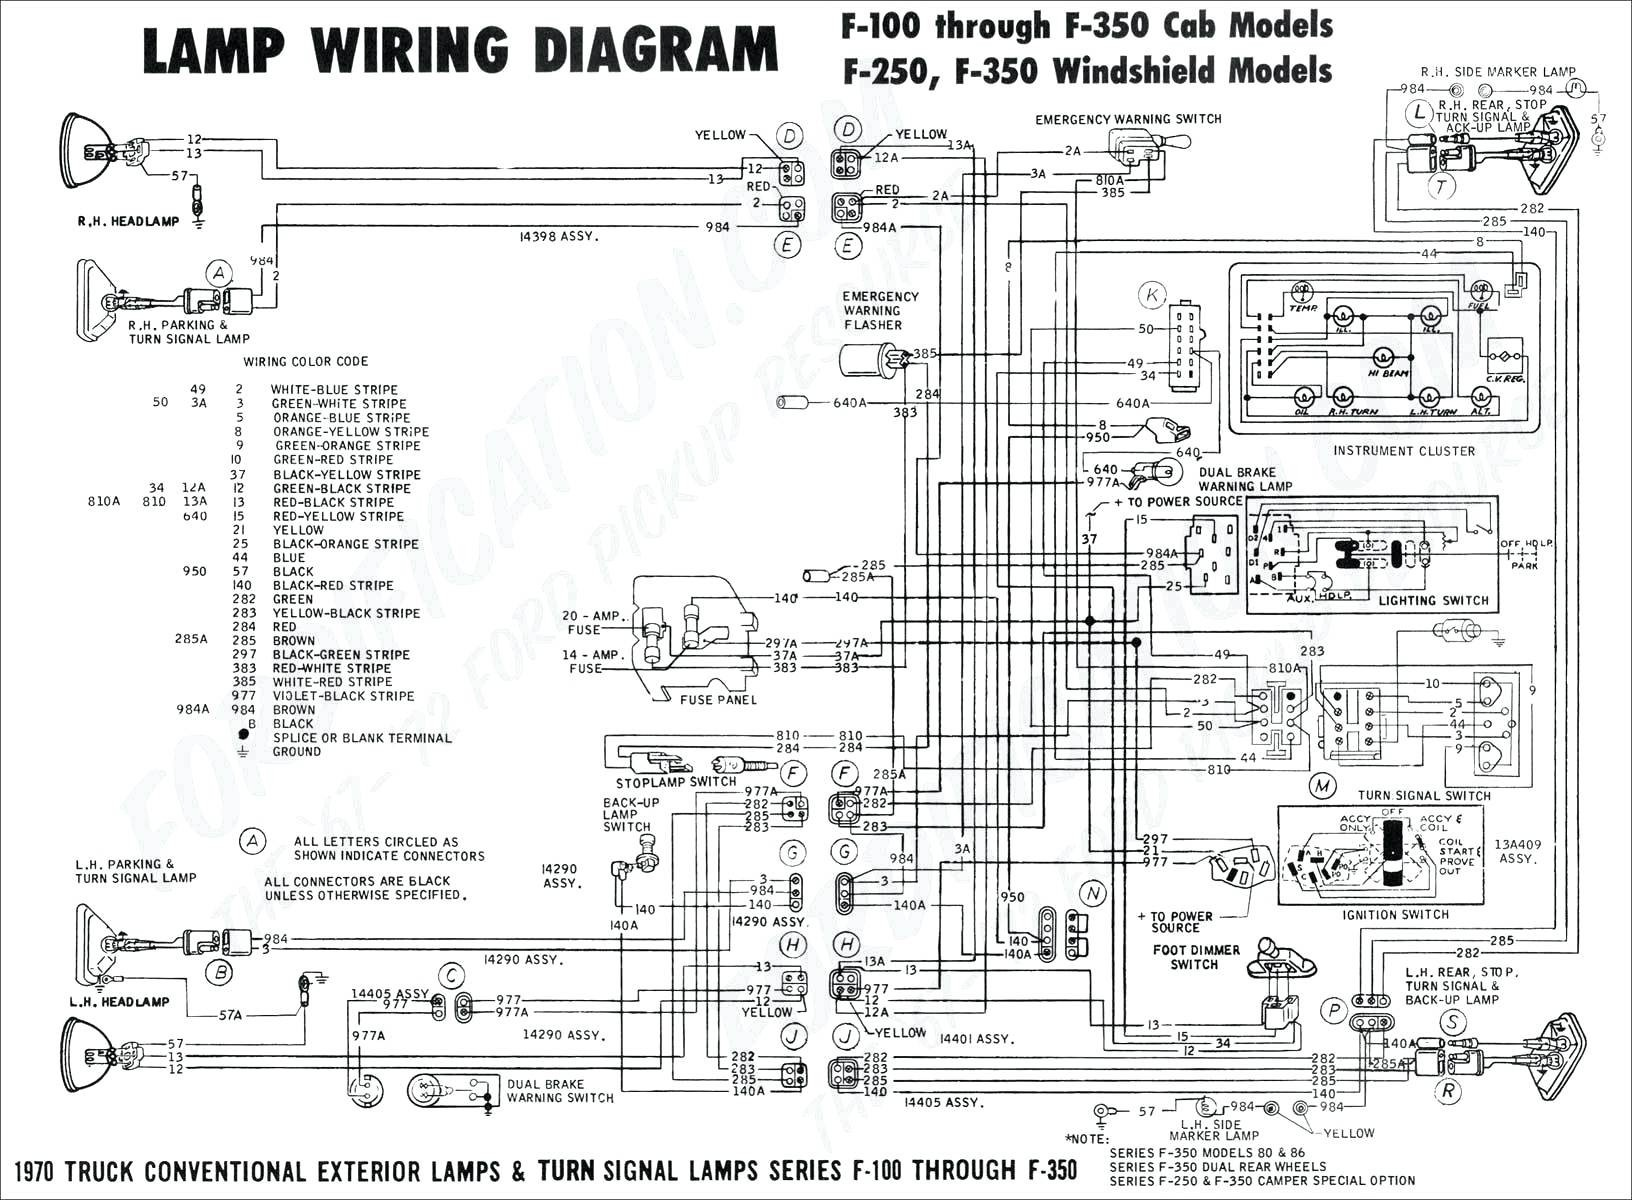 2007 Nissan Maxima Engine Diagram 1995 Nissan Maxima Engine Diagram Experts Wiring Diagram • Of 2007 Nissan Maxima Engine Diagram